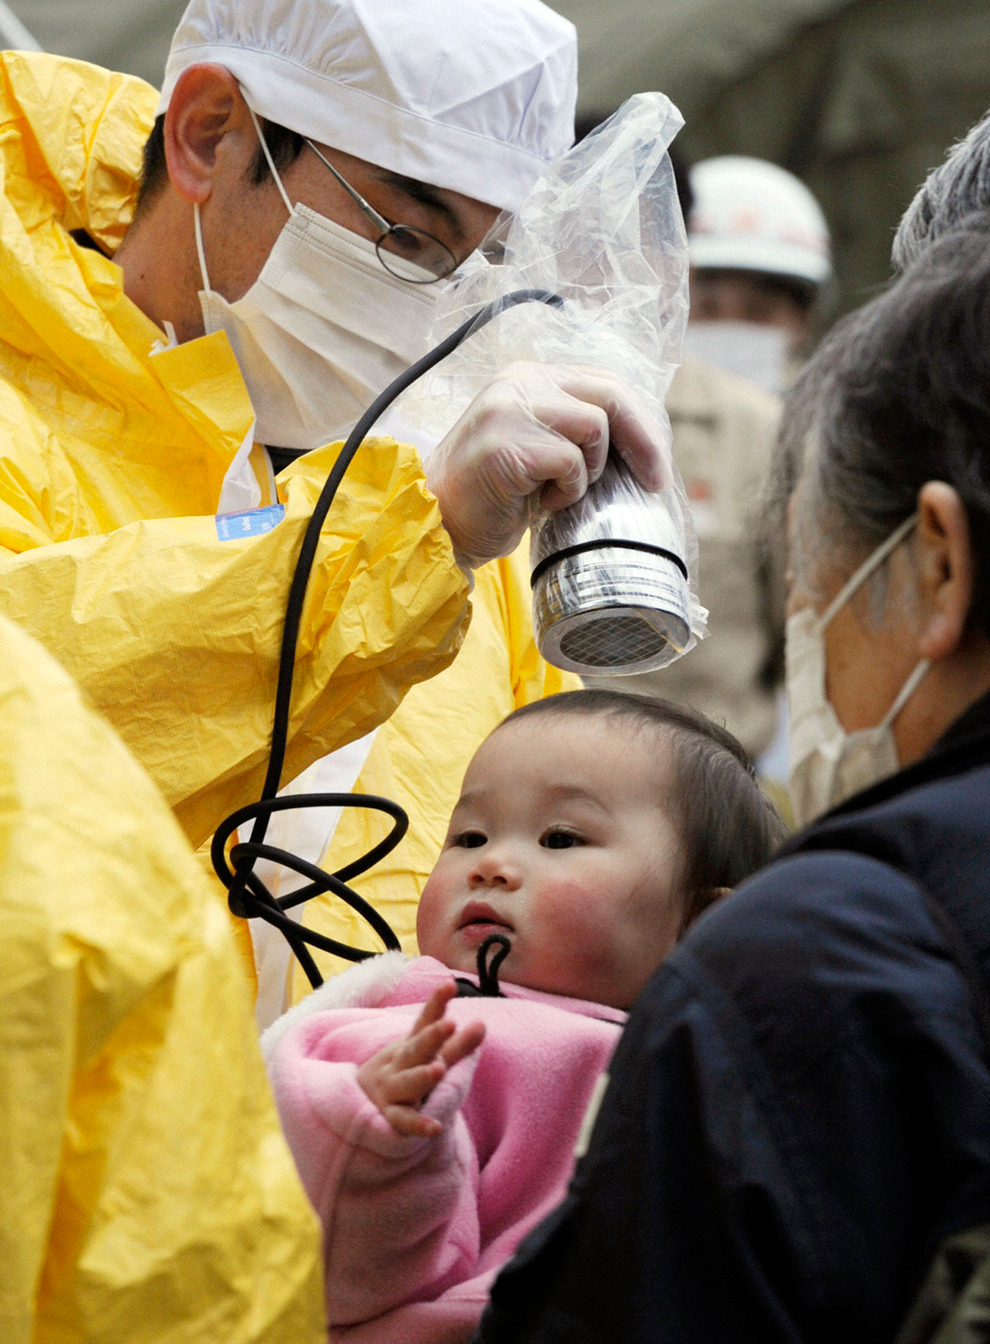 A child get radiation screening in Japan